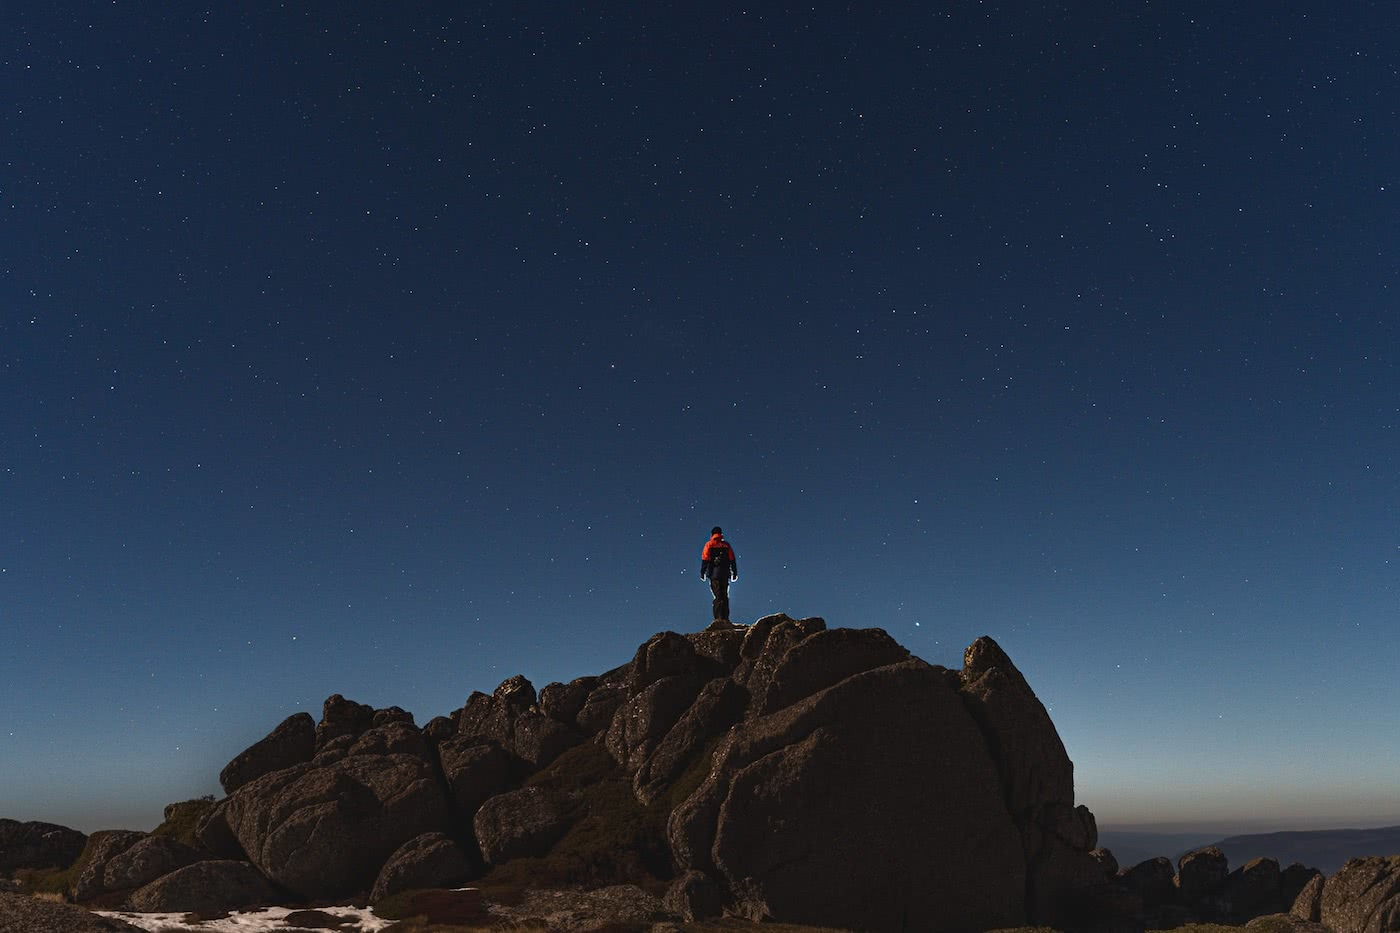 Spring Snow Campout // Main Range (NSW) by Mattie Gould, photo by Jon Harris, astrophotography in the moonlight